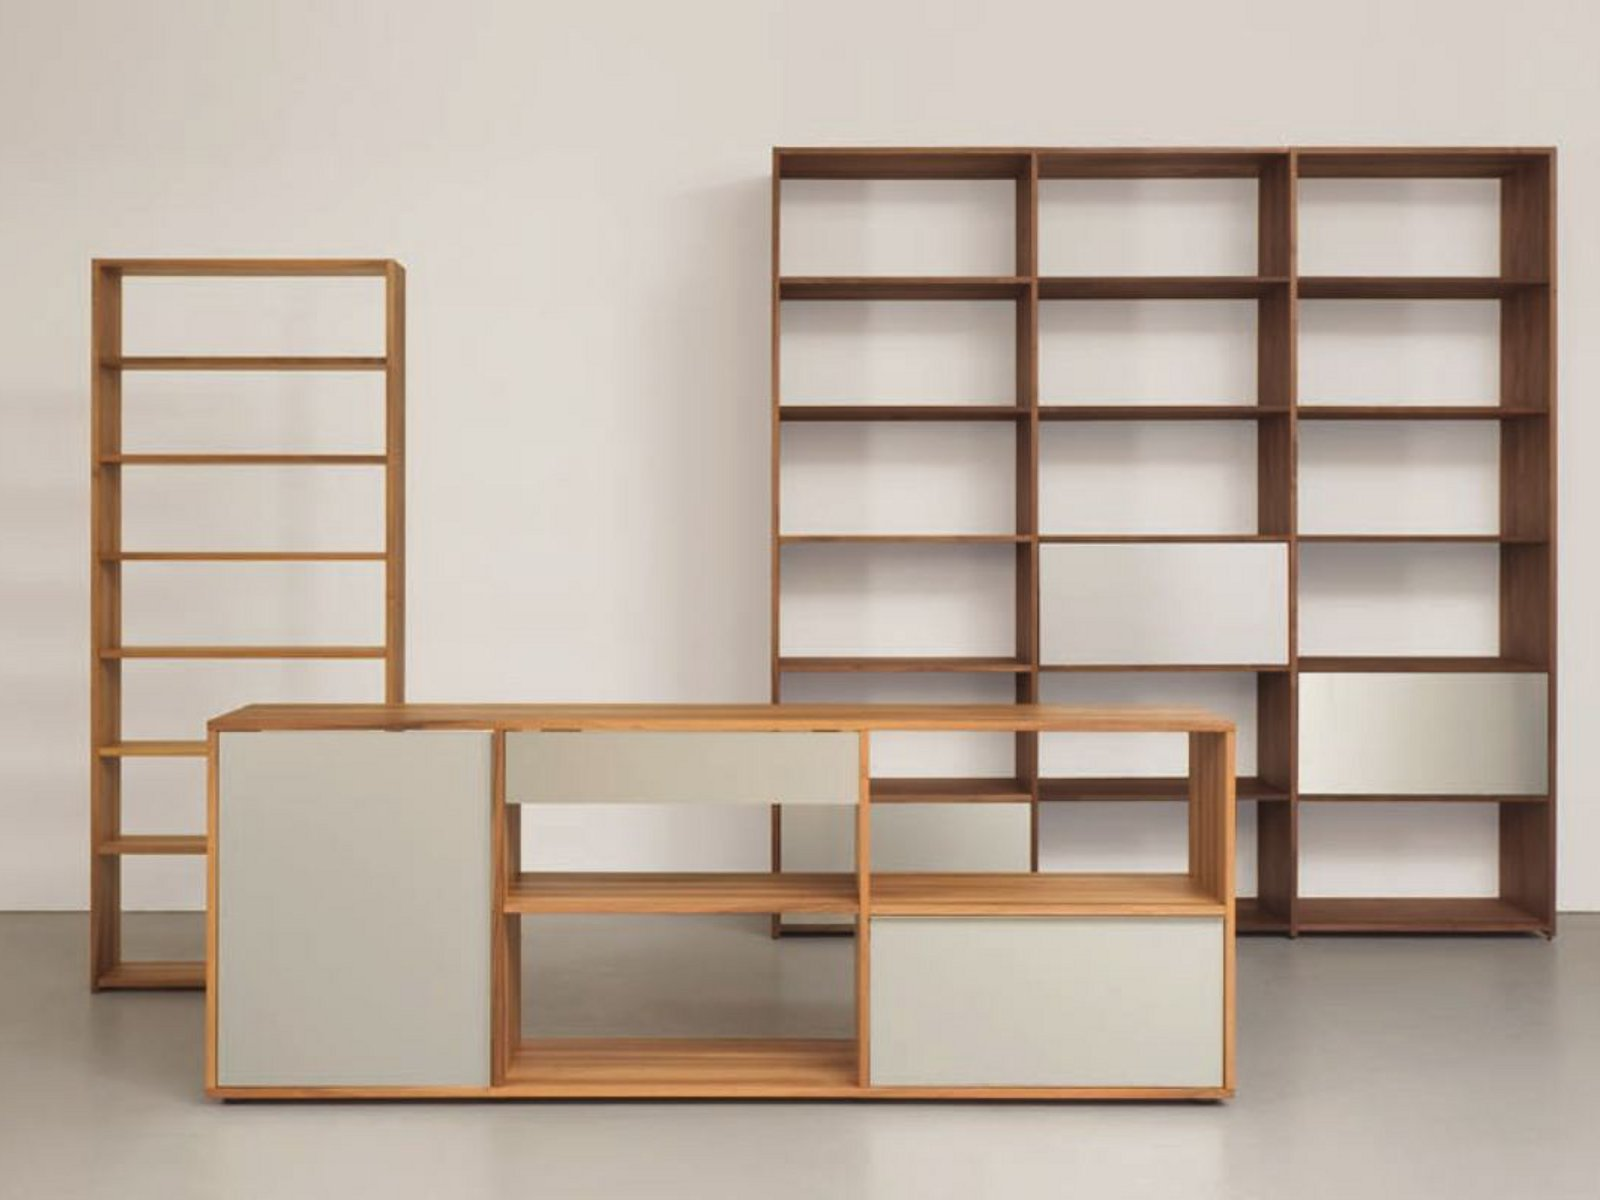 biblioth que modulable en bois massif dasregal by sanktjohanser design matthias hubert sanktjohanser. Black Bedroom Furniture Sets. Home Design Ideas